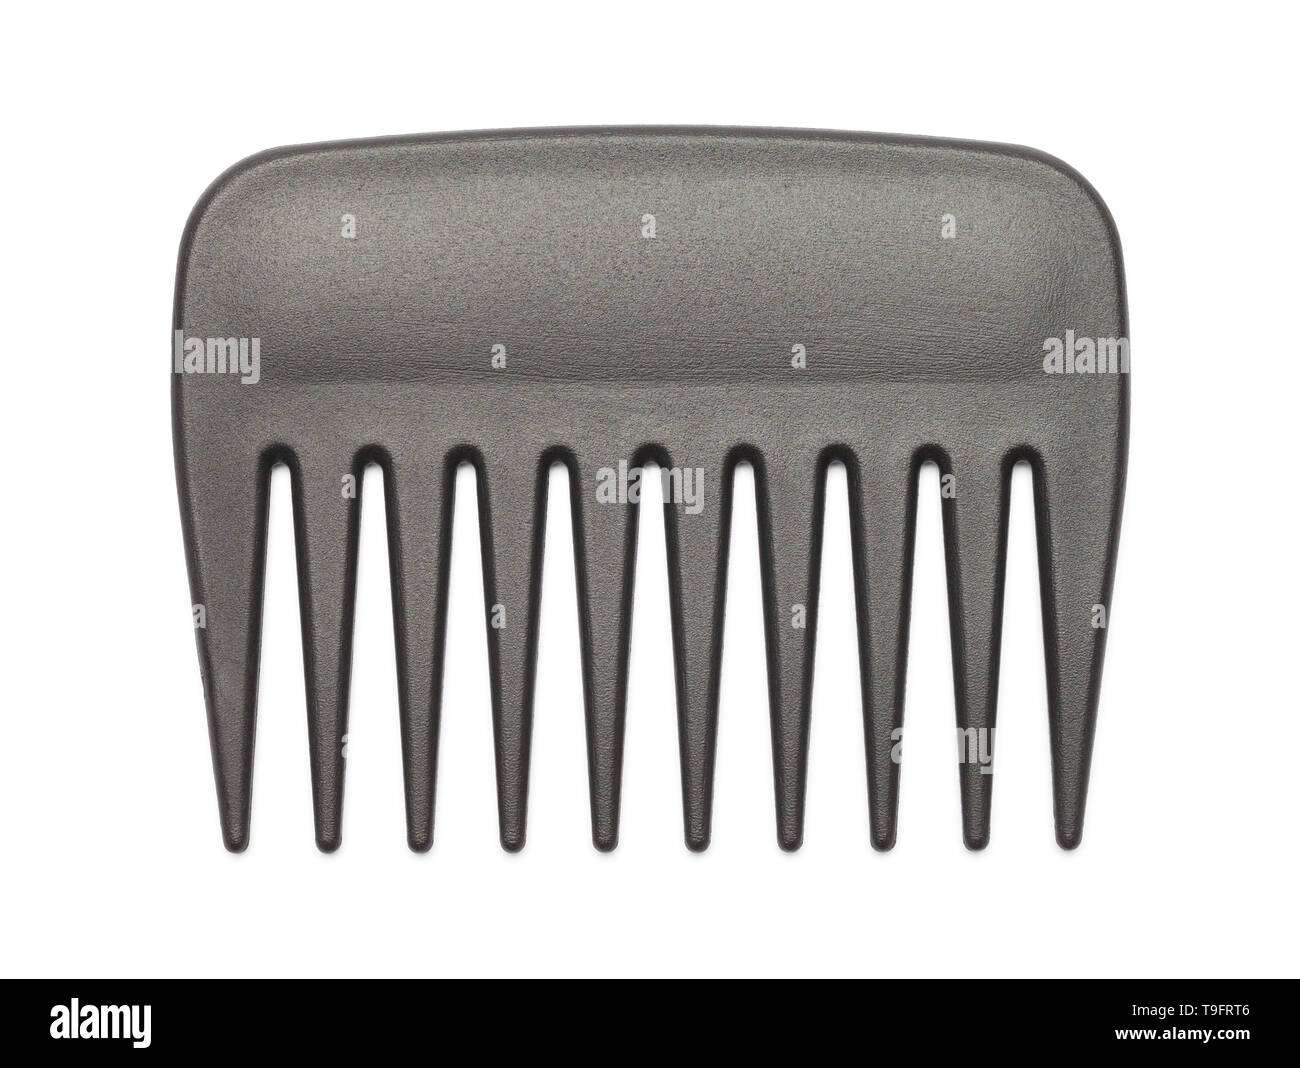 Small Black Pick Comb Isolated on White Background. Stock Photo